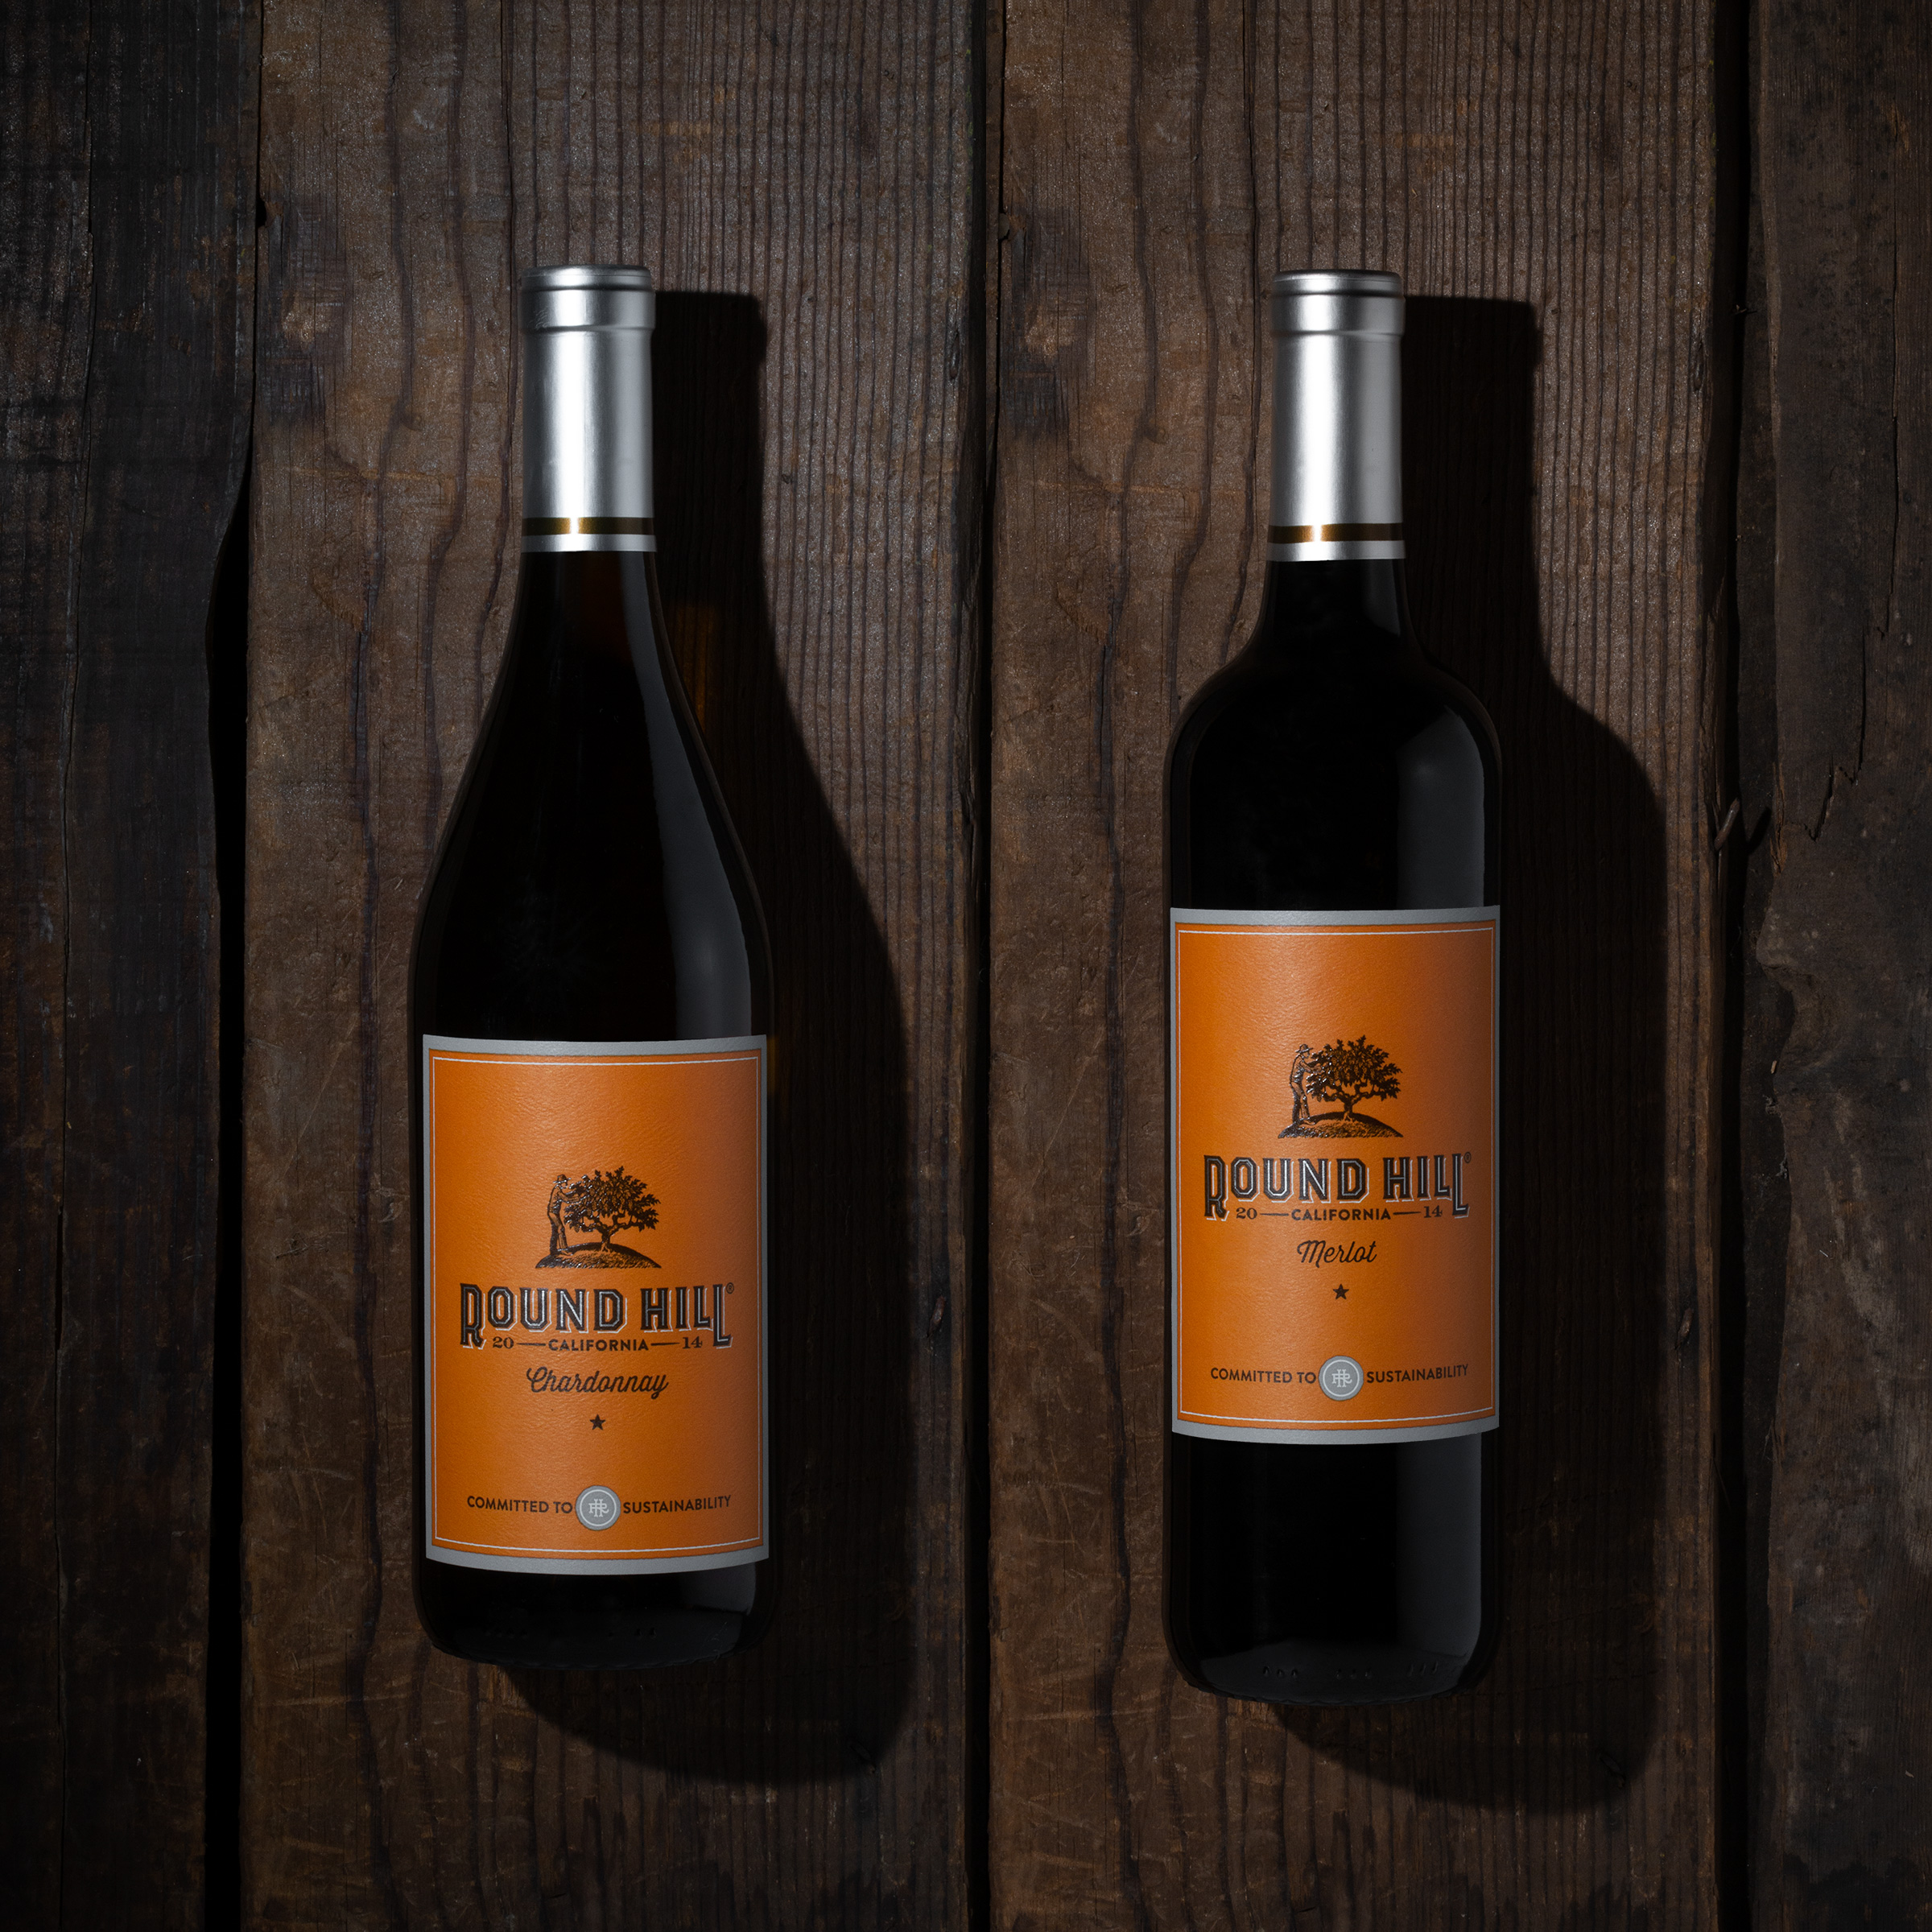 Round Hill Vineyards and Cellars Packaging Design Refresh by Force & Form